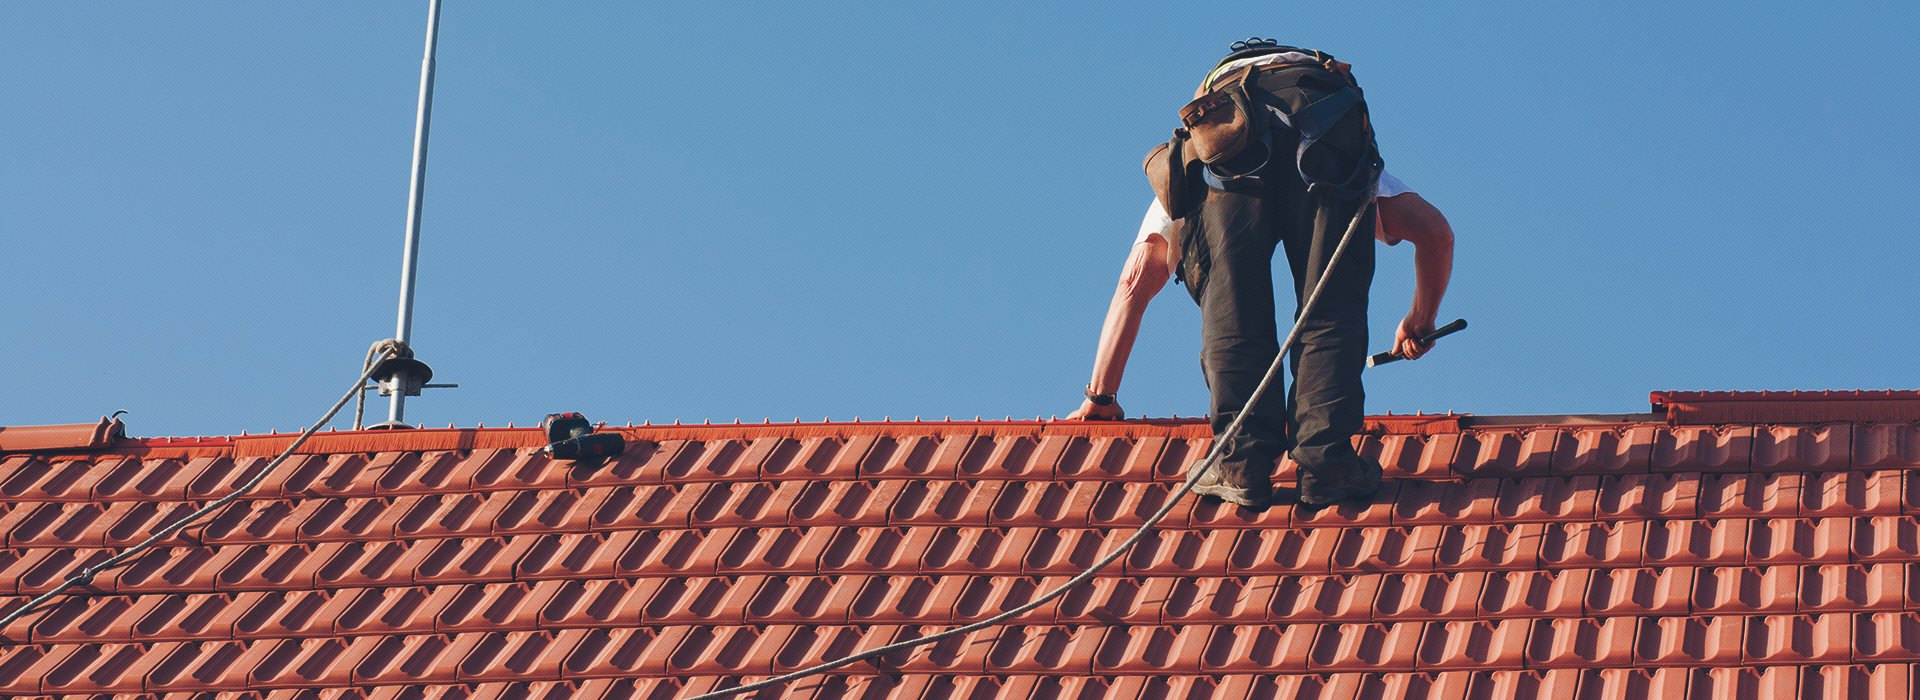 A roofer working on a roof